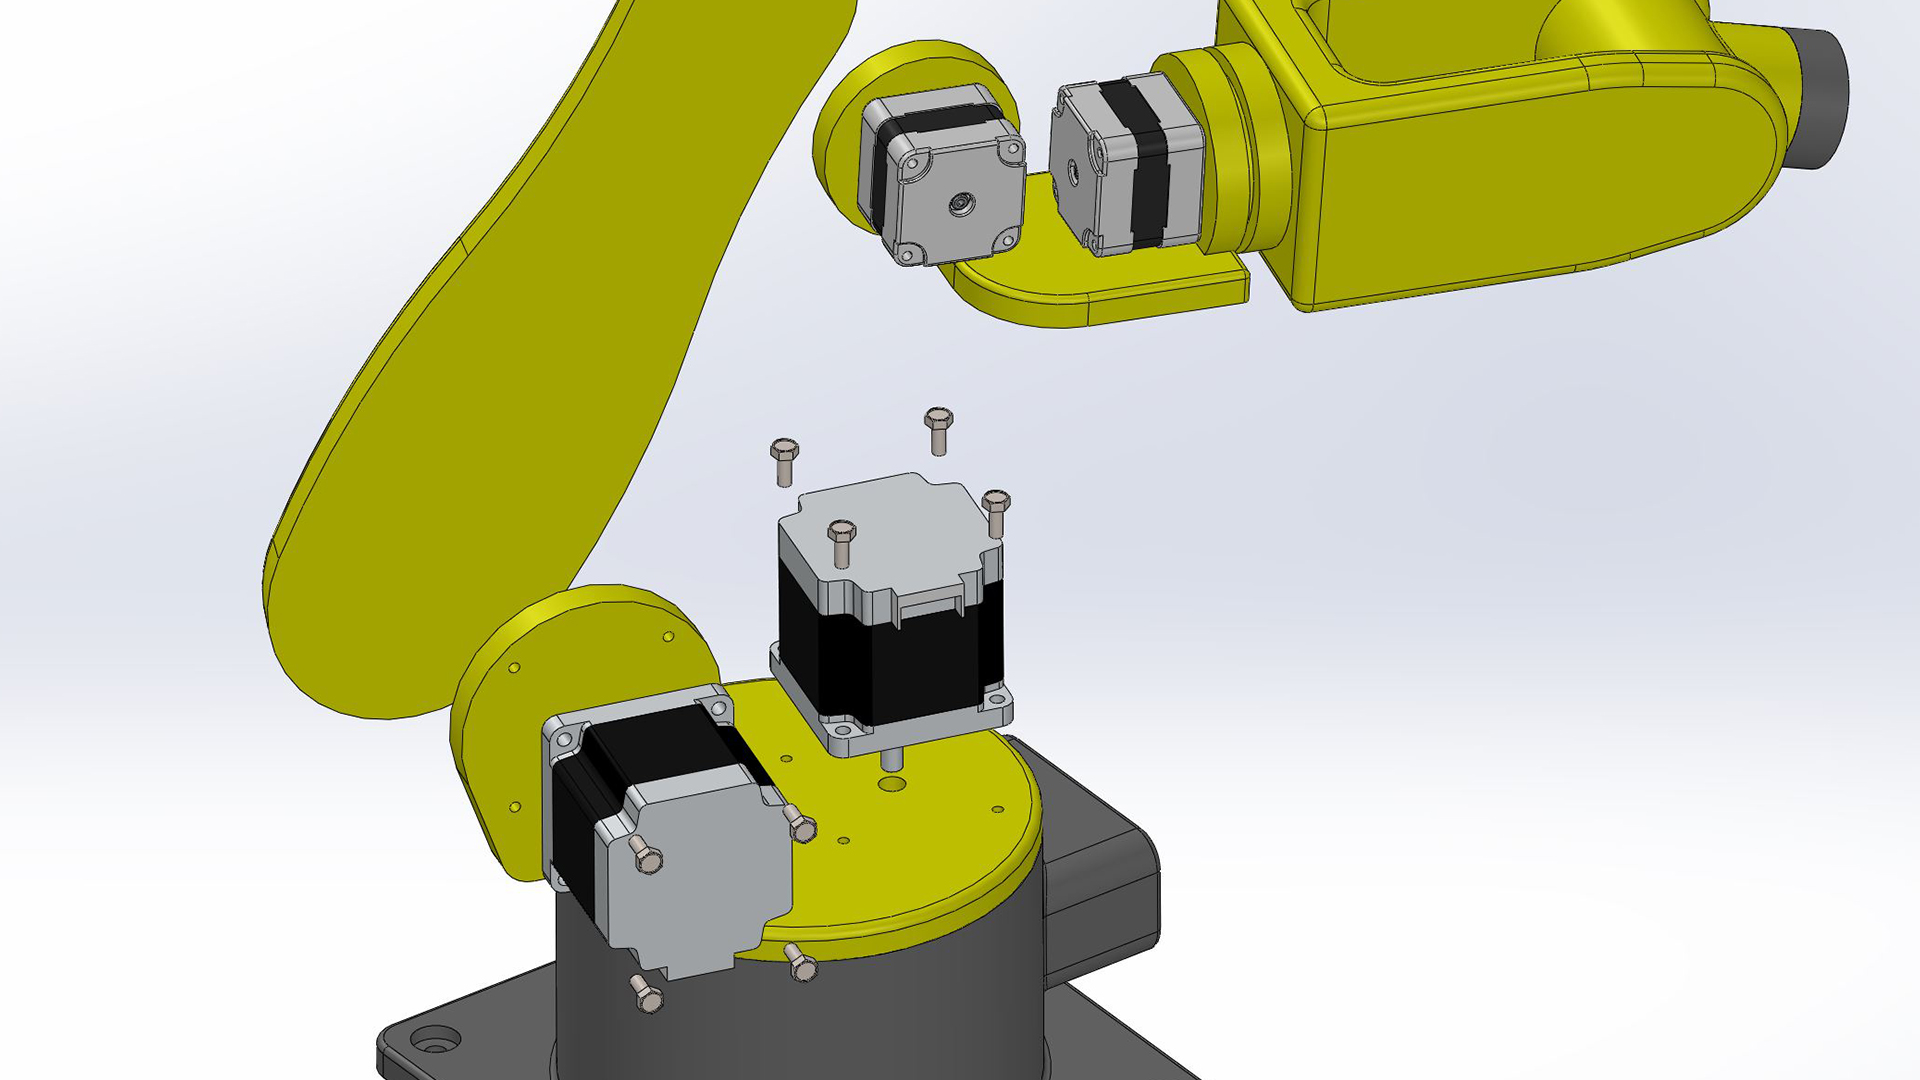 Mechatronics design in SOLIDWORKS